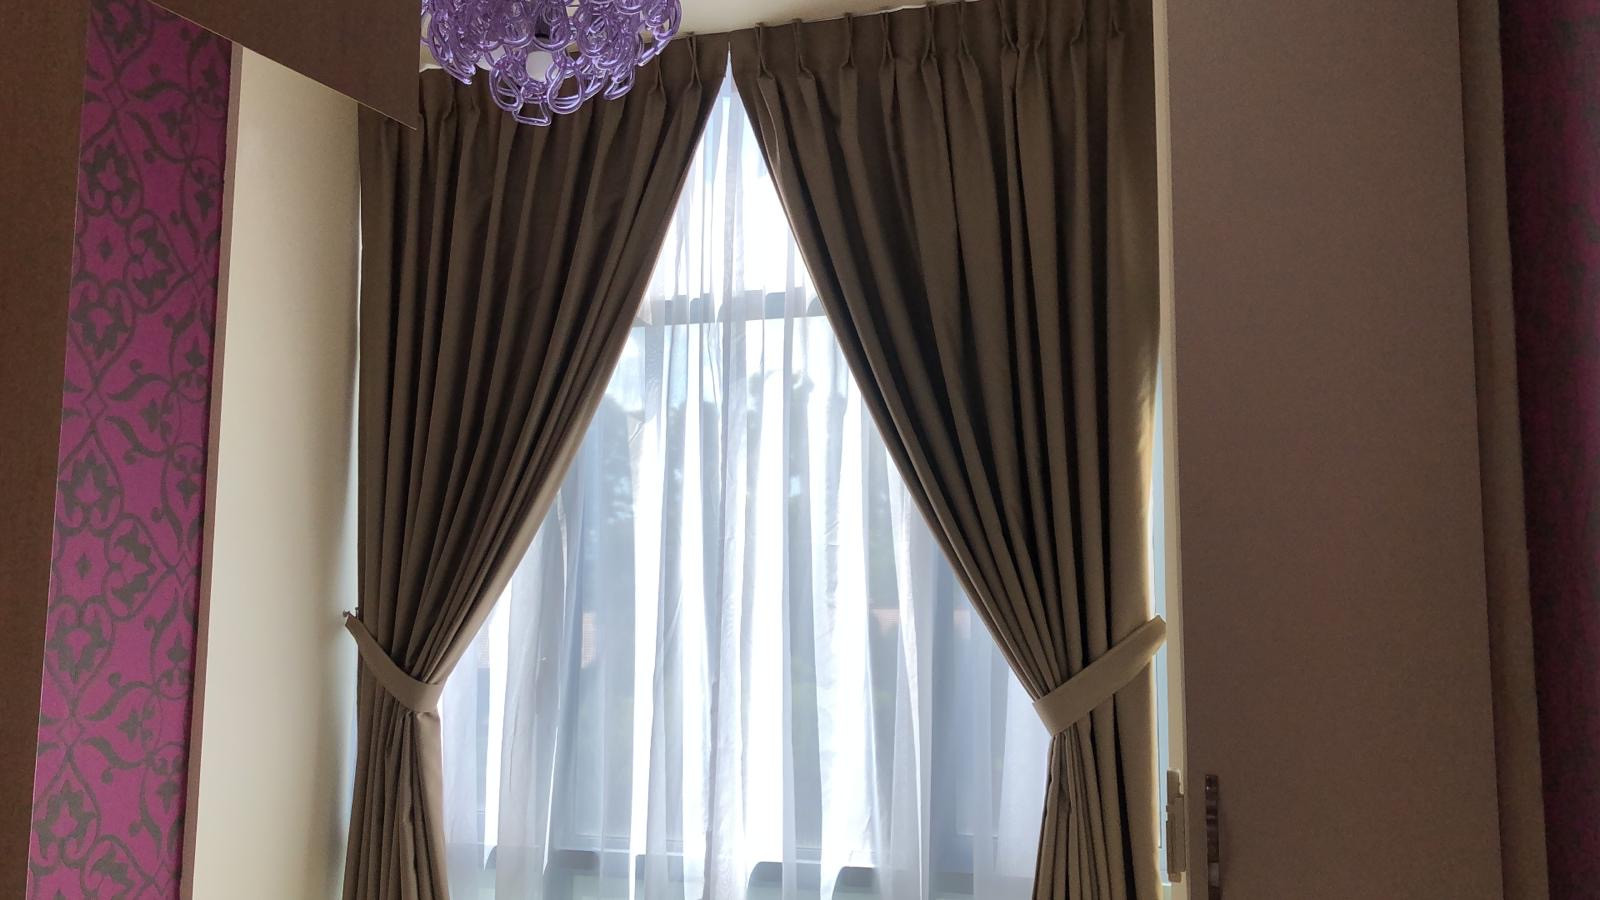 Day Curtains - END CURTAIN Singapore